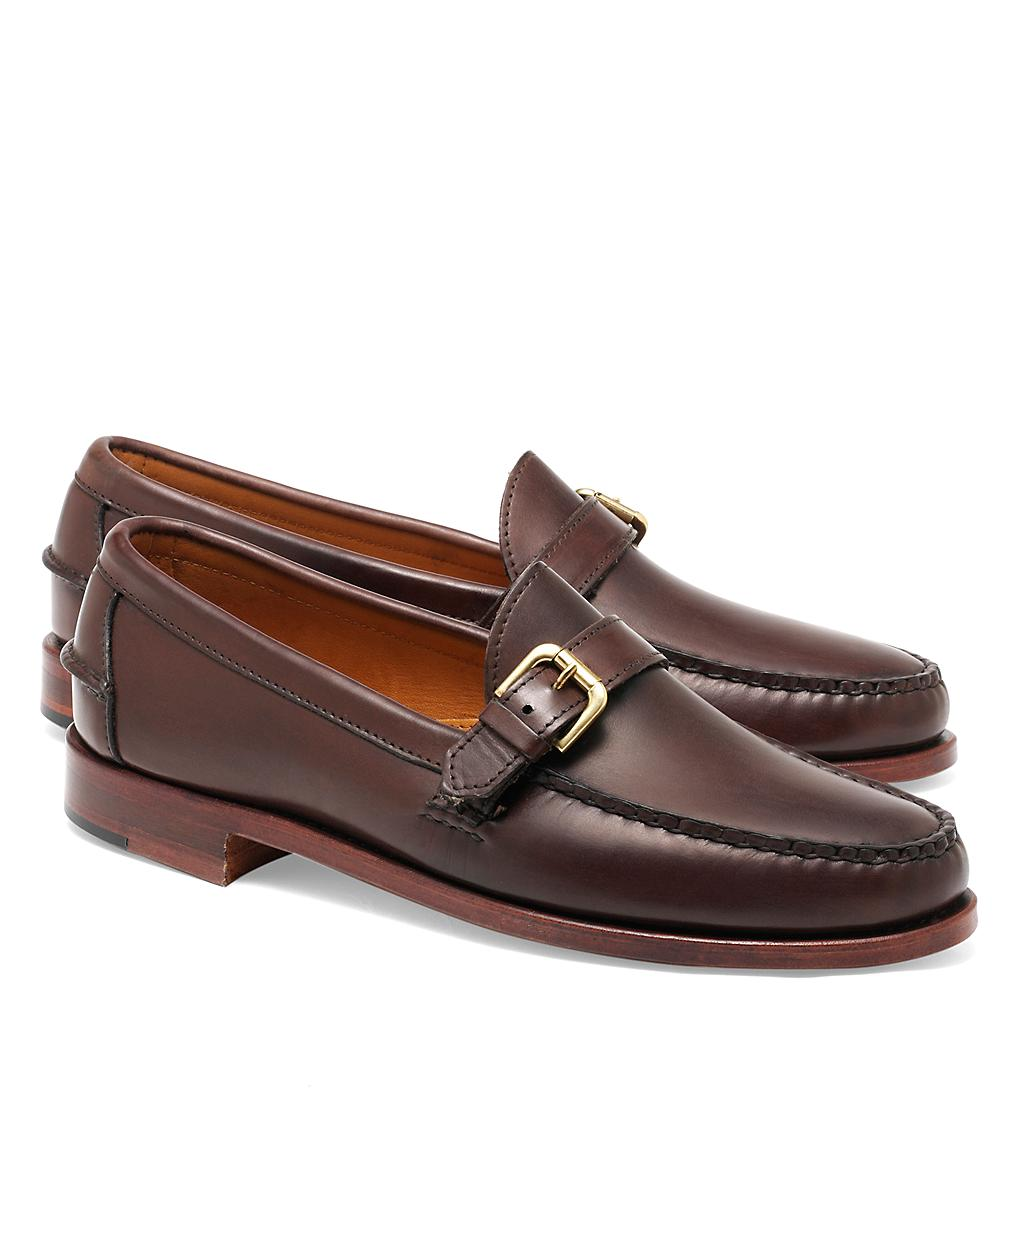 Brooks Brothers Rancourt Amp Co Calfskin Buckle Loafers In